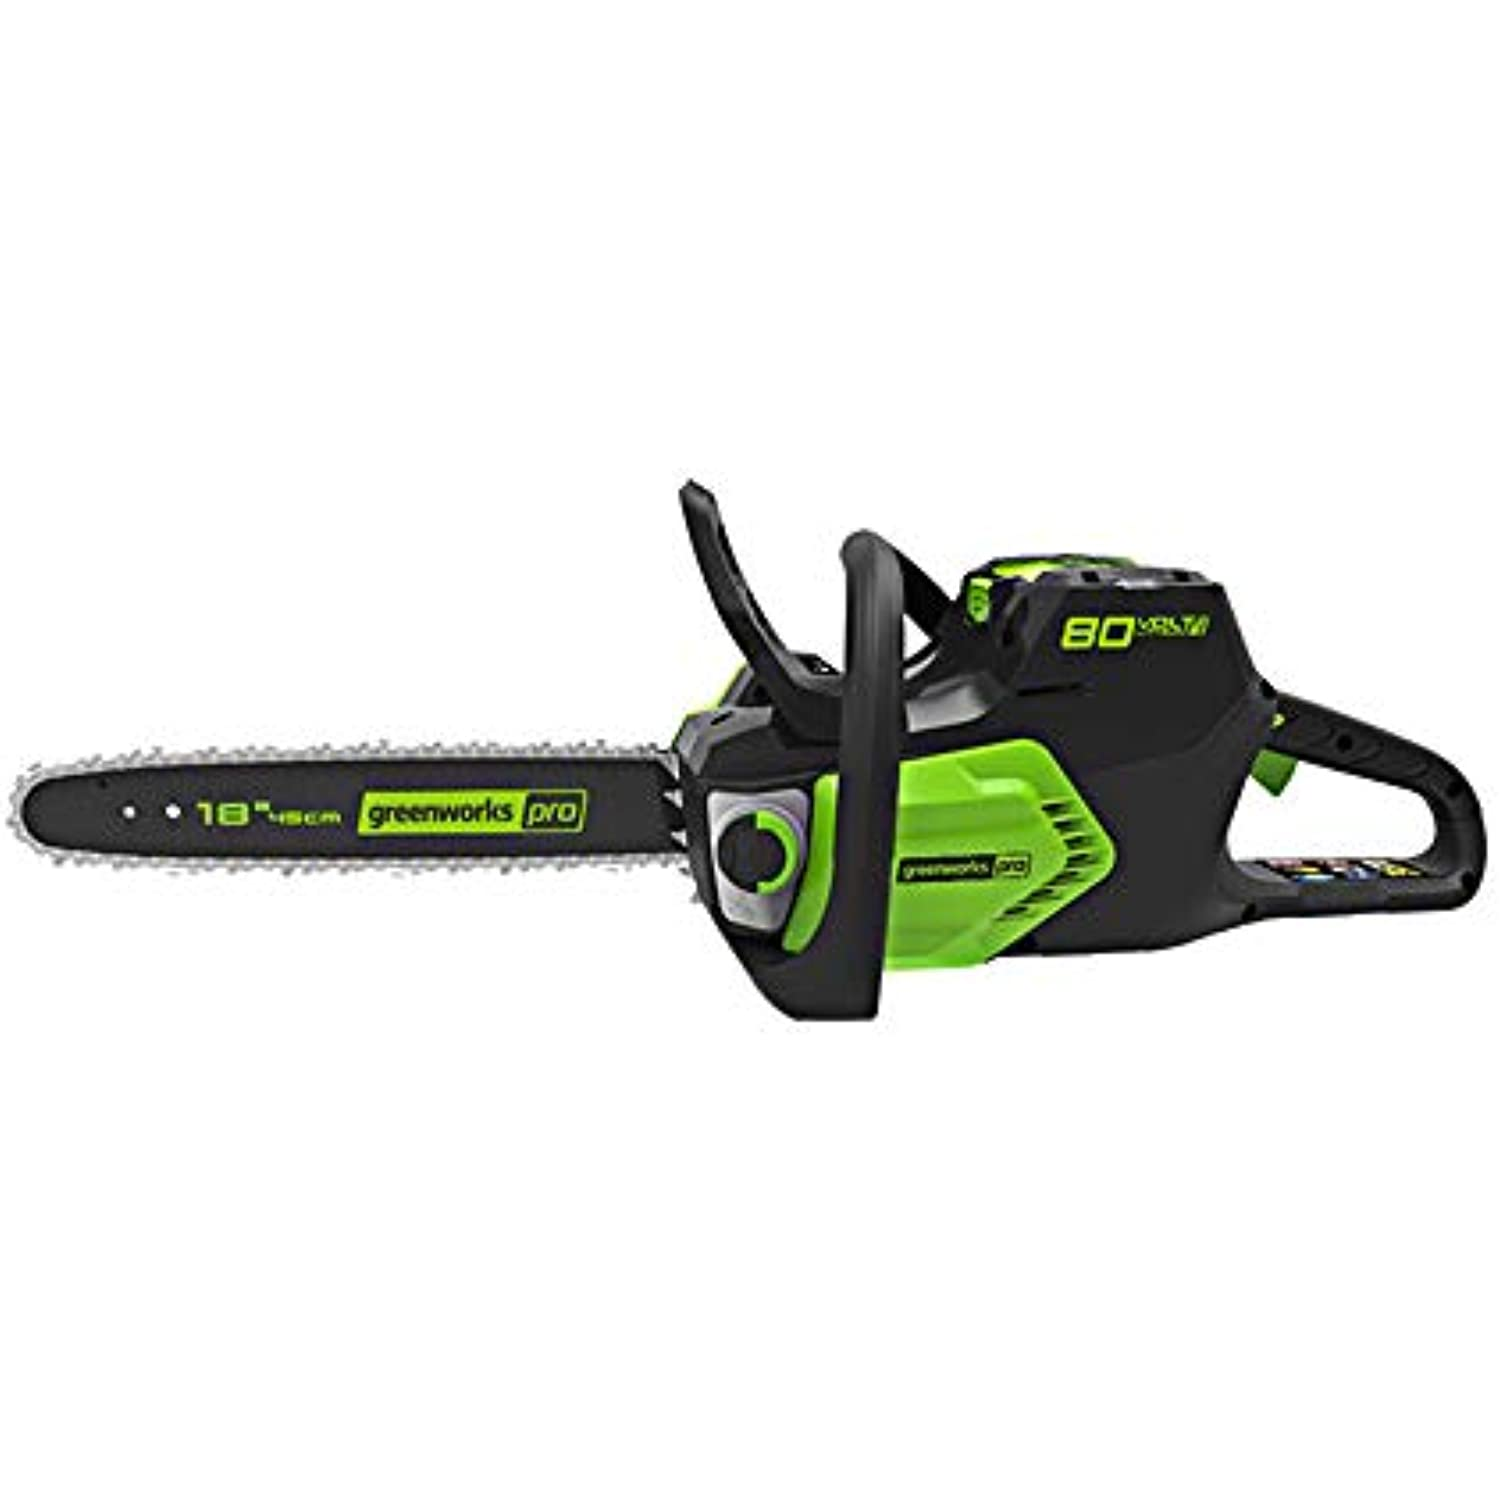 Greenworks Pro 80V 18 inch Cordless Chainsaw with Chain Oil and Hardcase, Tool Only, CS80L00